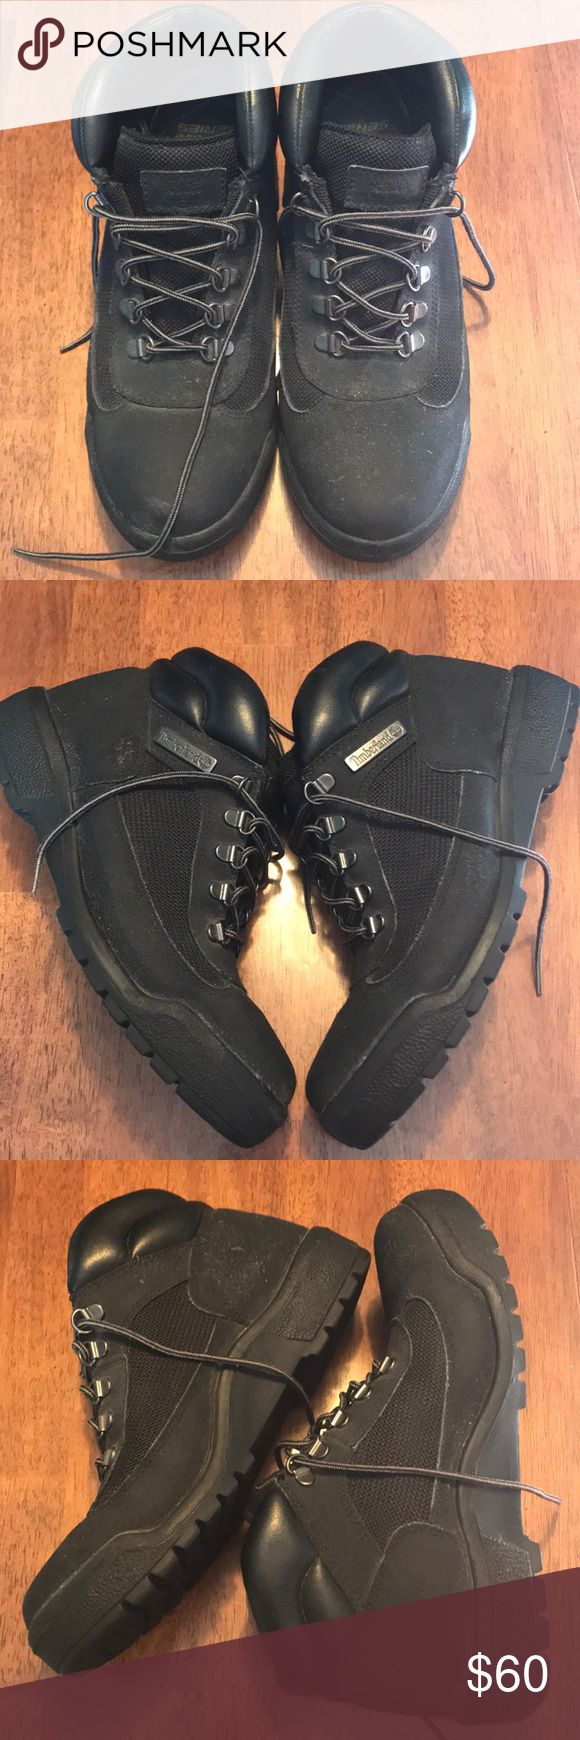 Men's Timberland Field Boots Men's Timberland field boots. Size 8 in men. Size 9.5 in women. Great condition. Shoes are dusty due to sitting around, wasn't sure how to clean them due to the material. Comment with questions. Open to offers. Timberland Shoes Boots